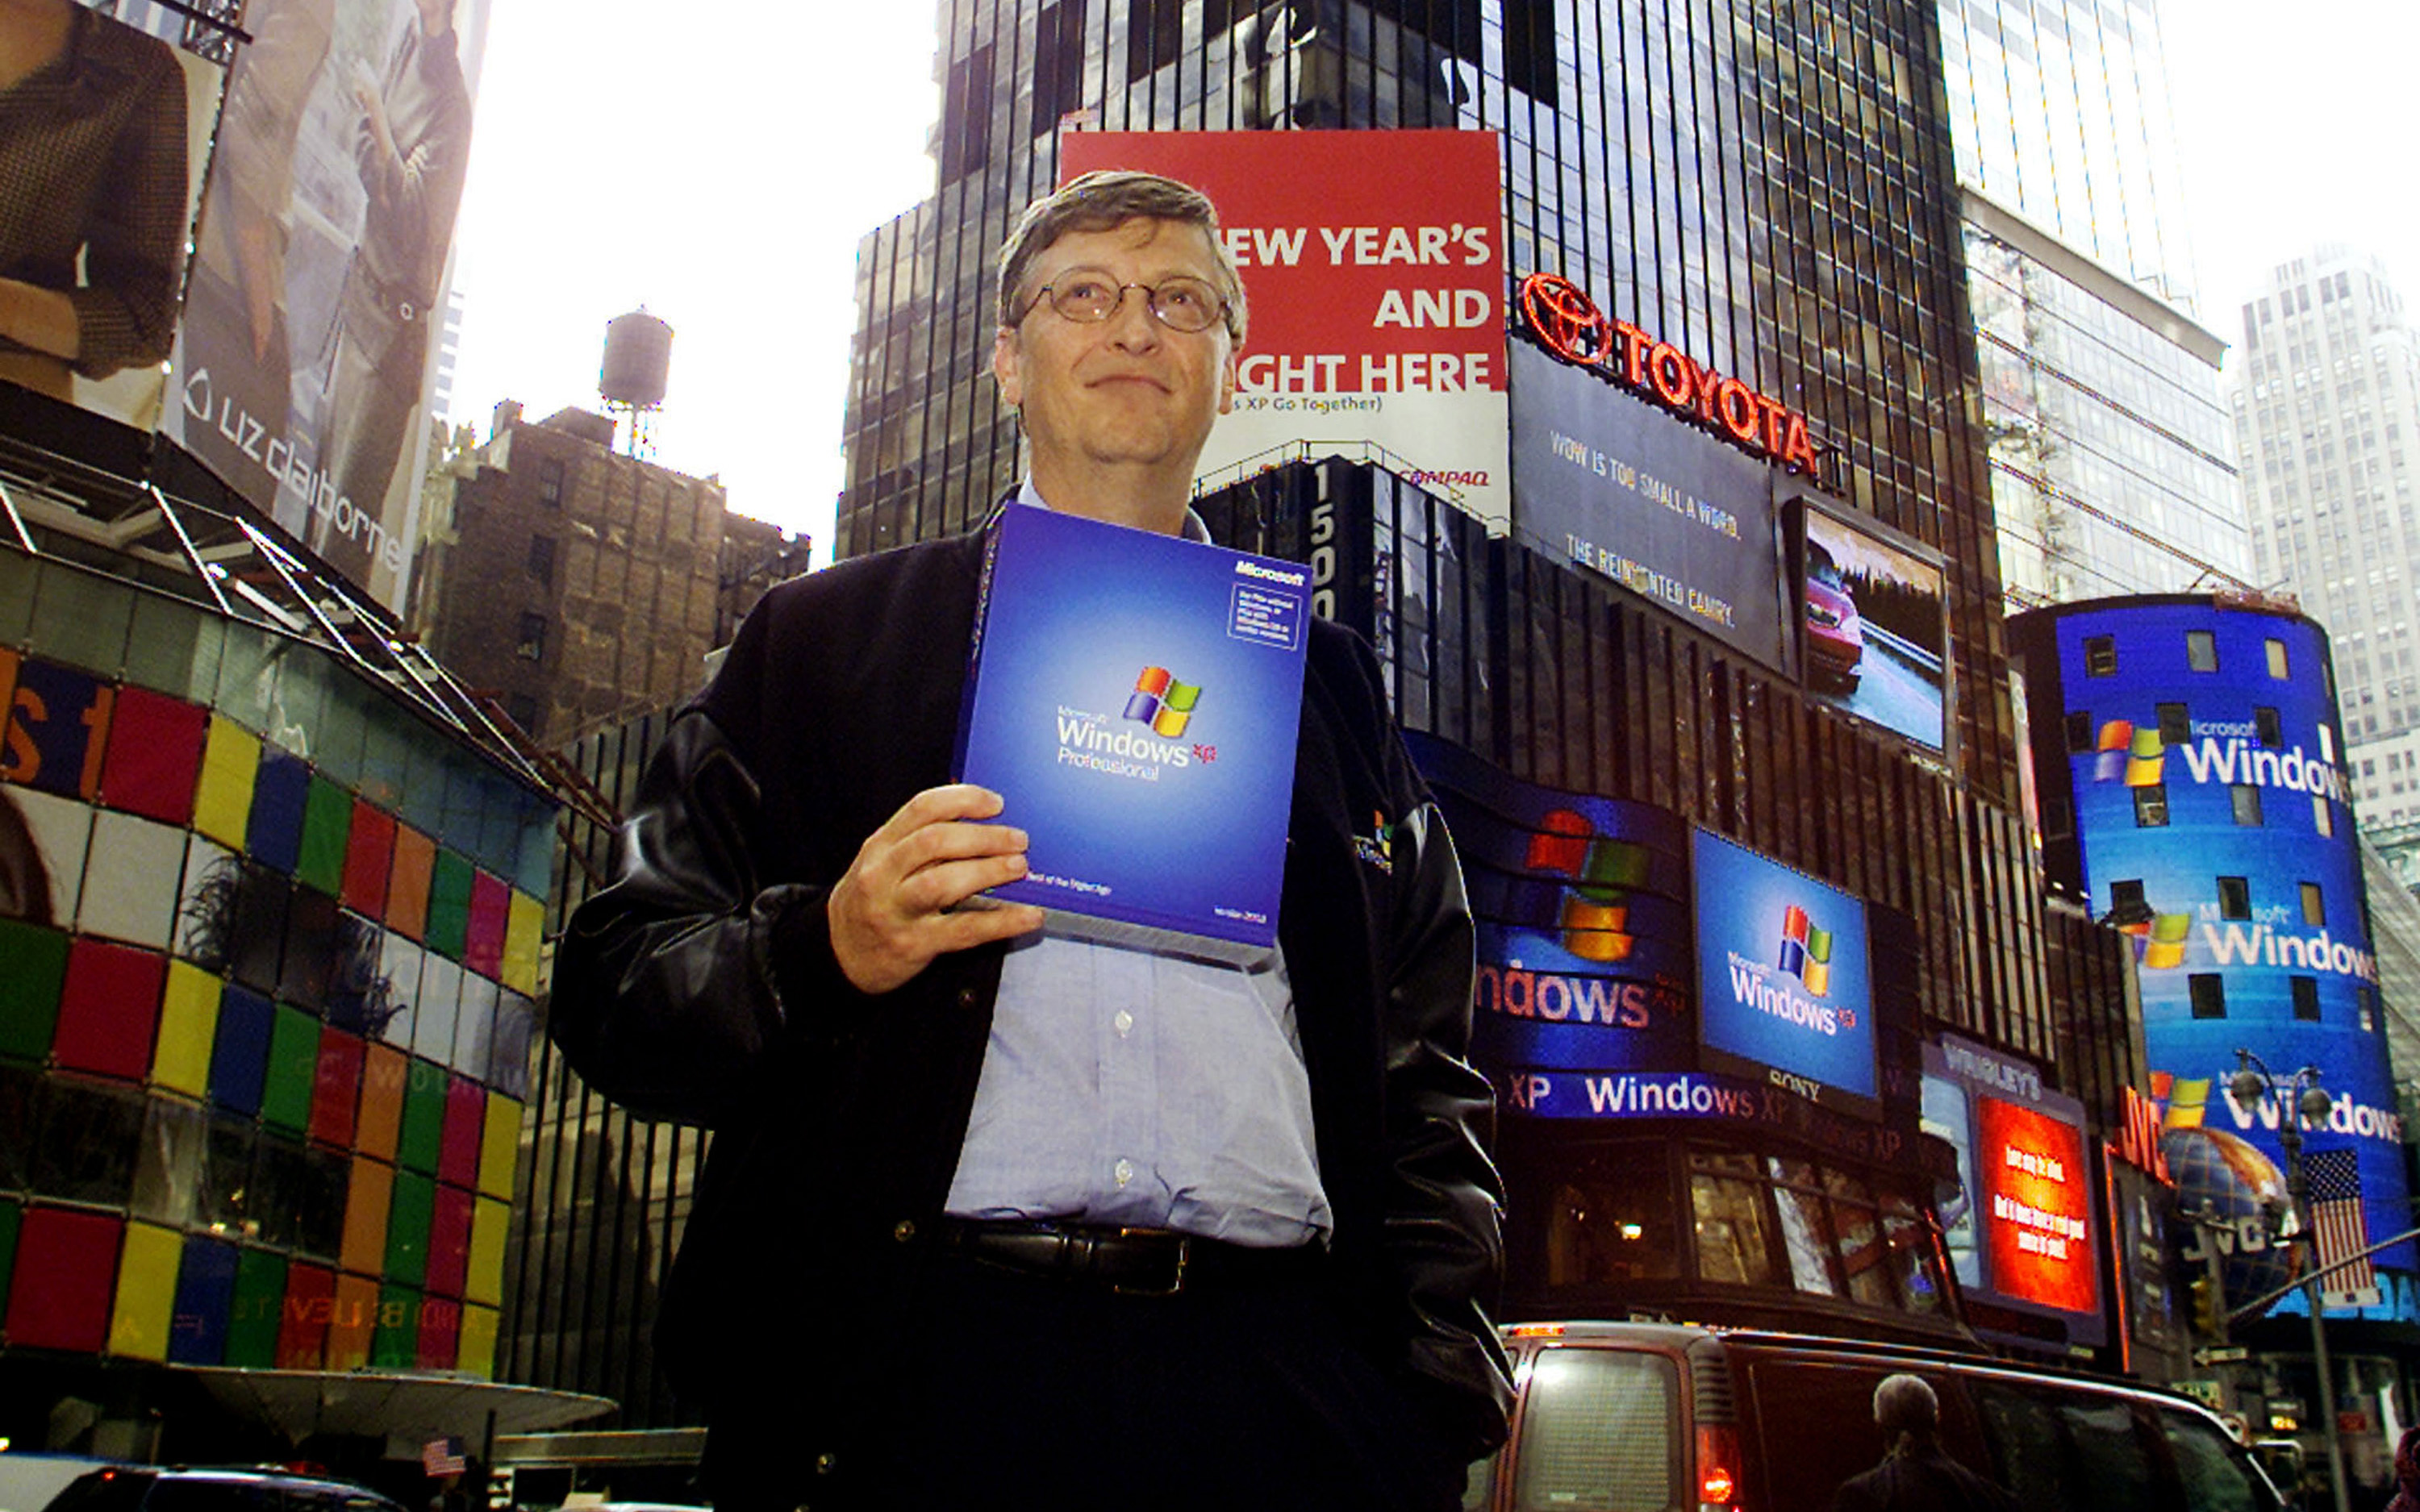 Bill Gates holds a copy of Windows XP in Time Square